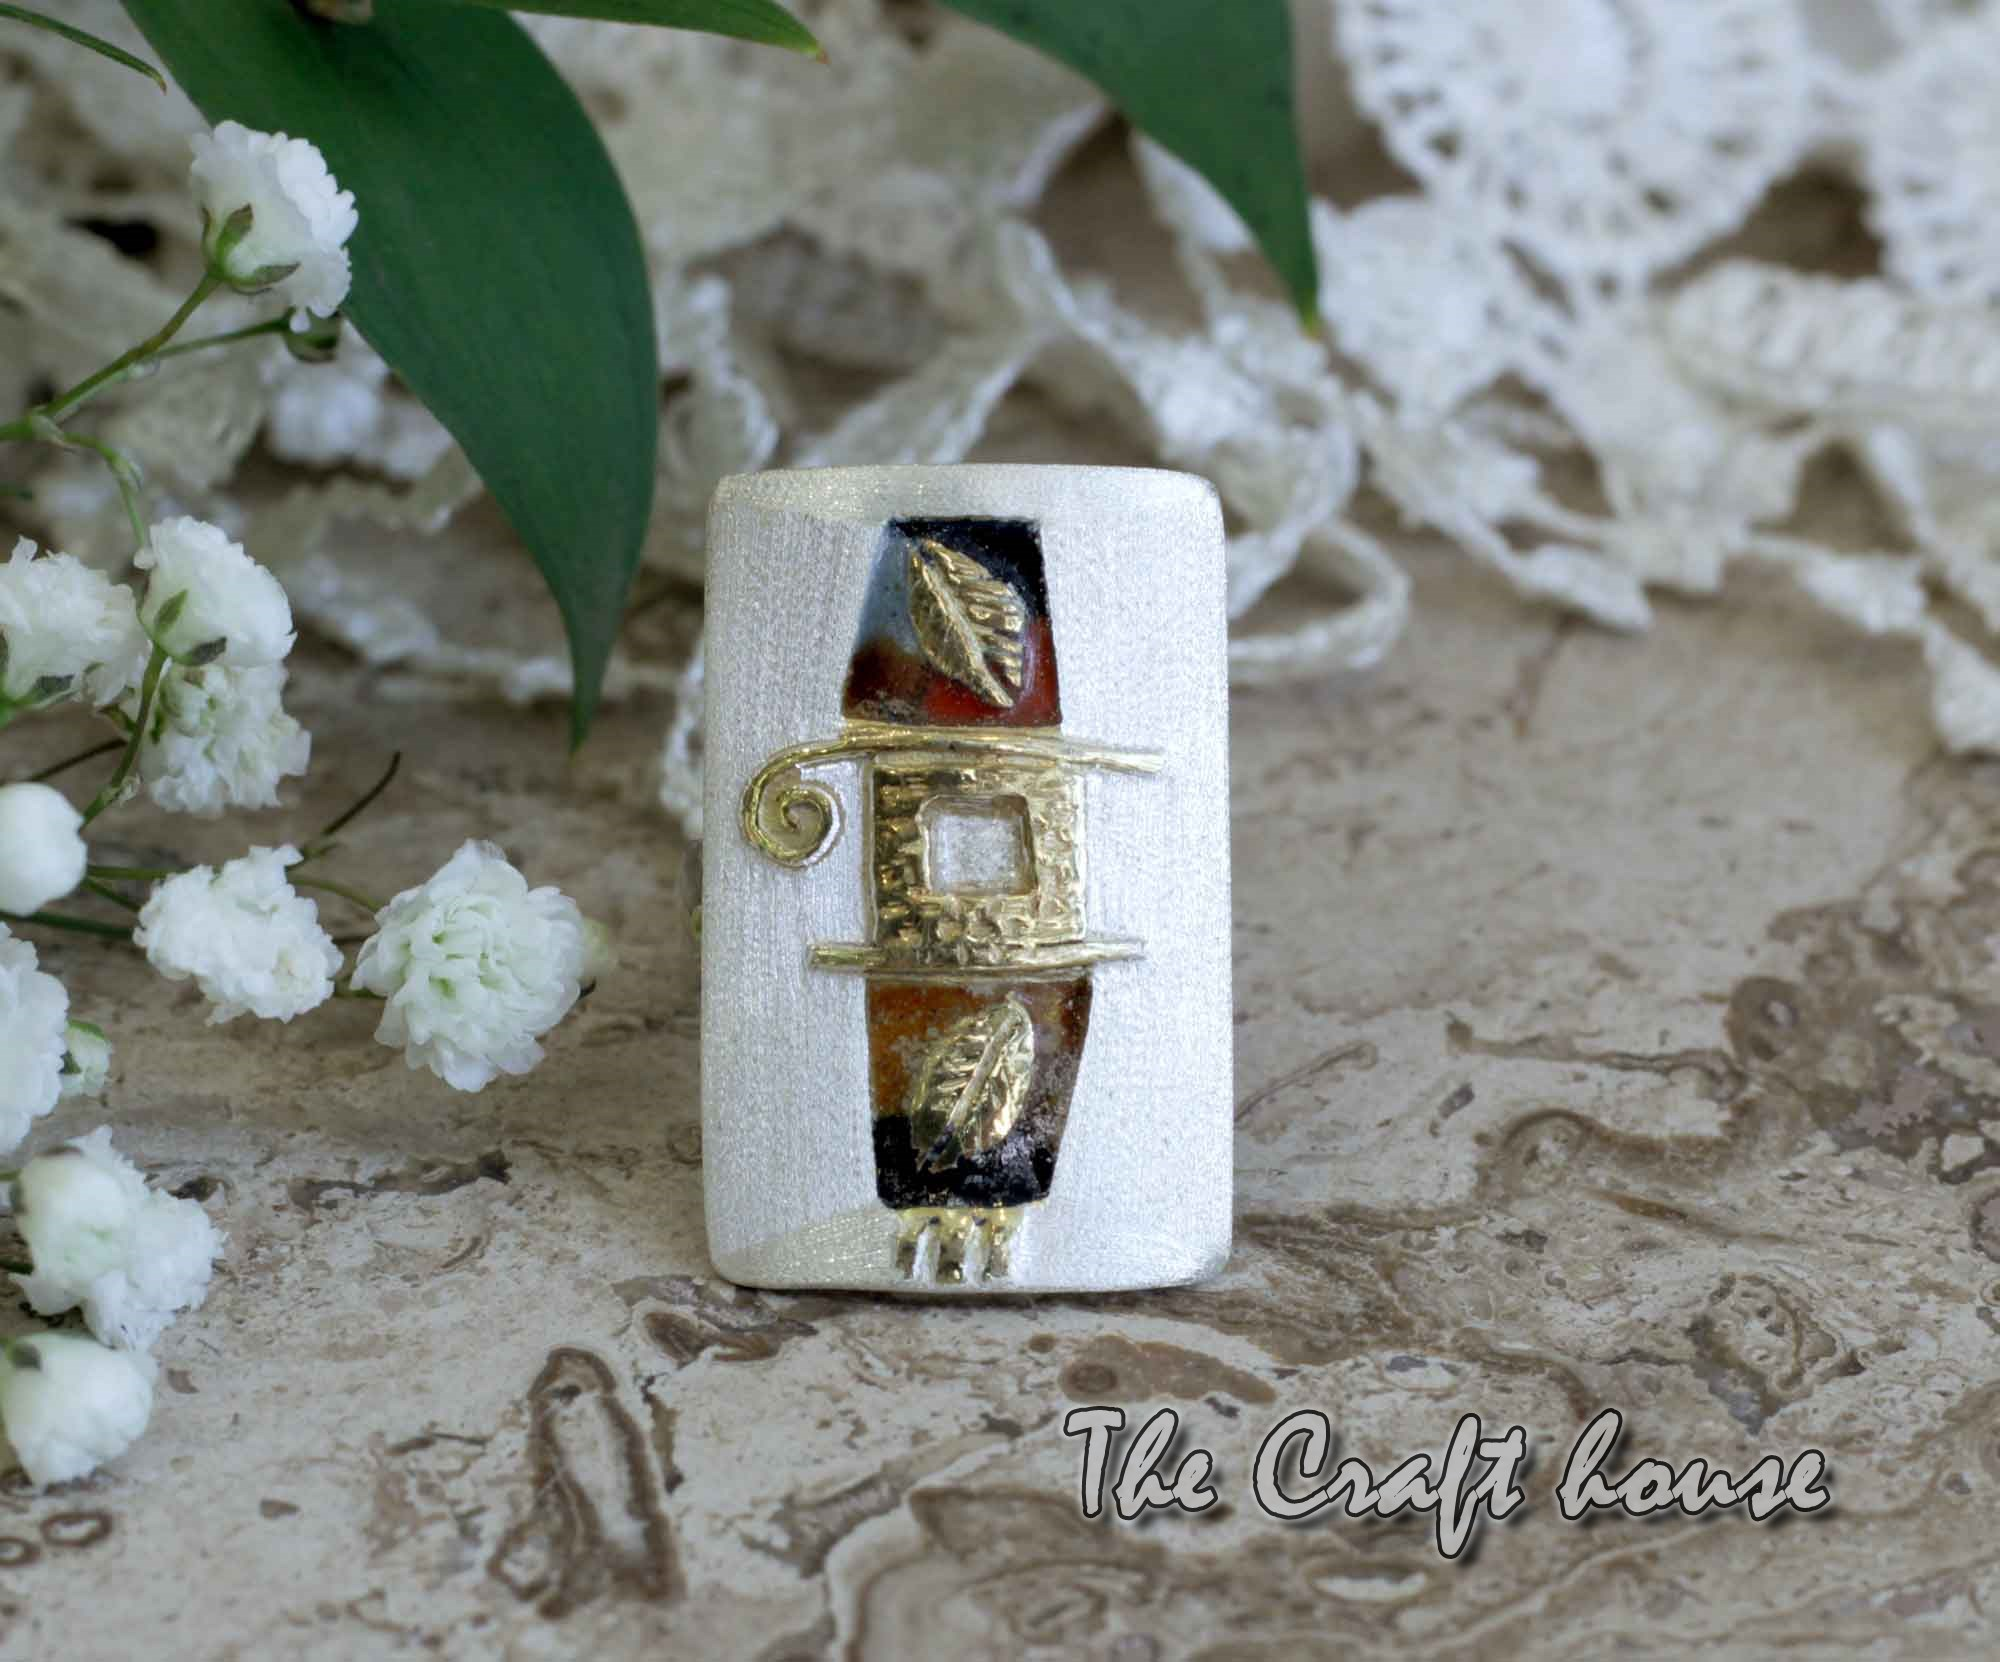 Silver ring with enamel and gold-plating